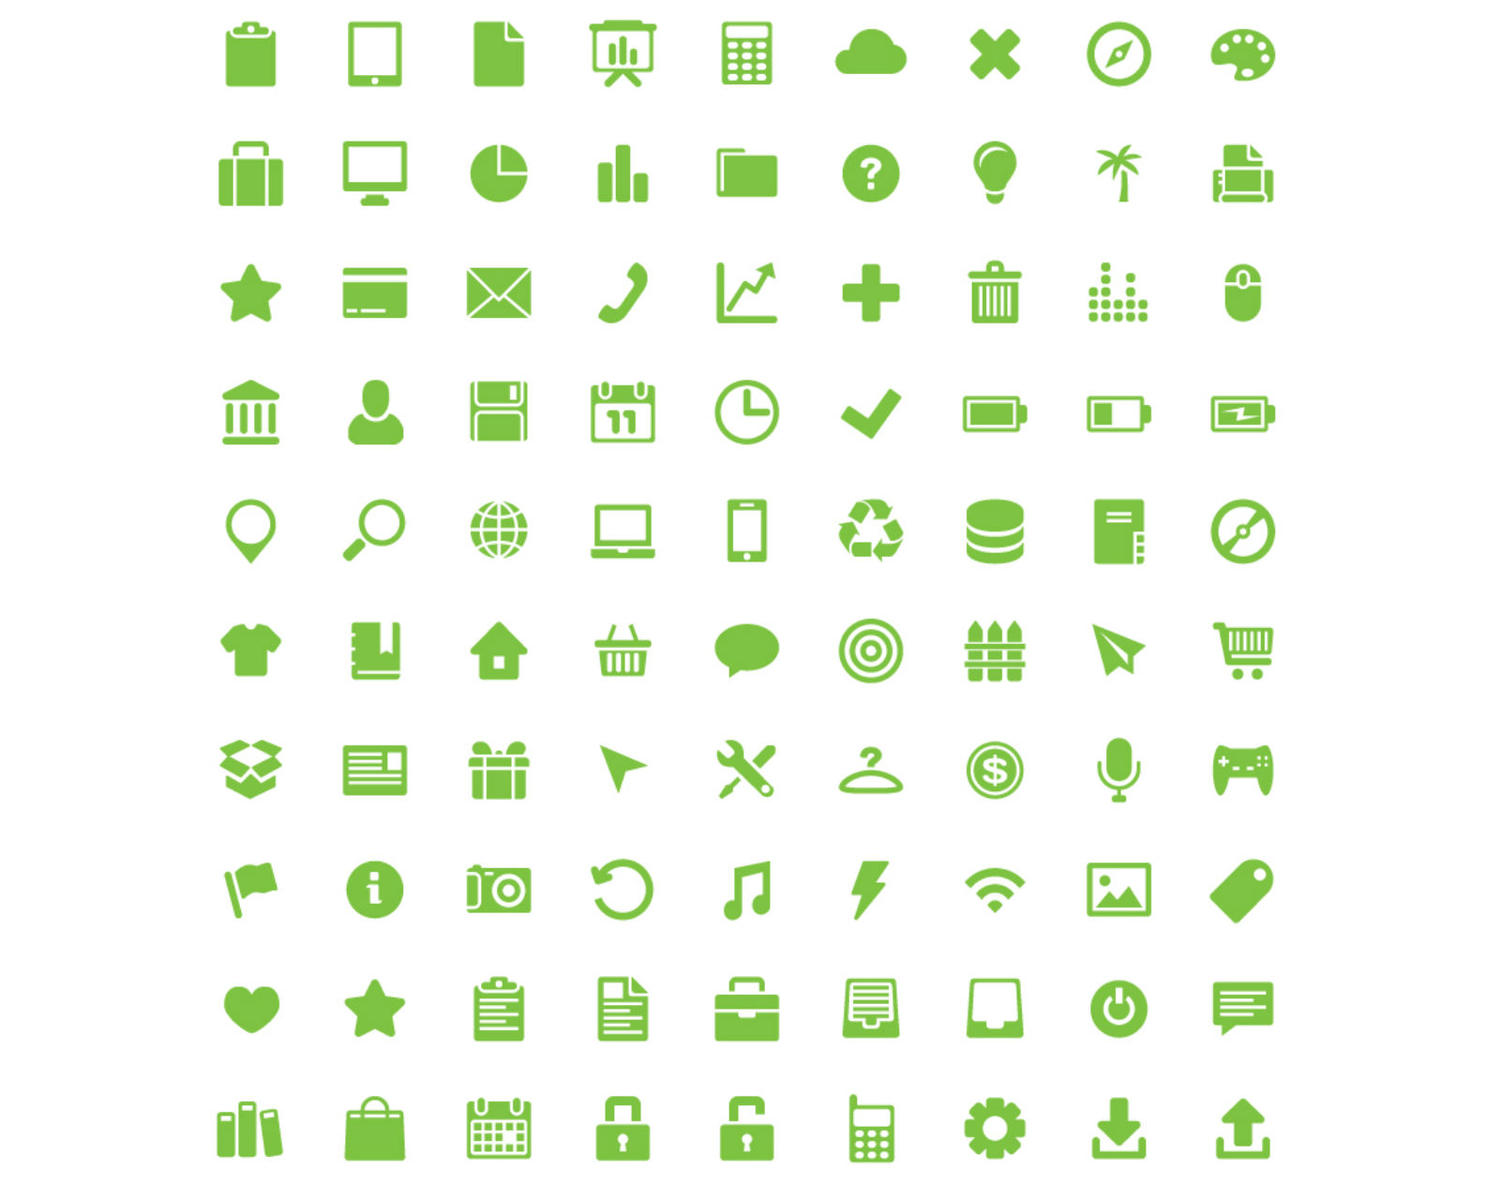 Professional & Custom Design Icon Set by madridnyc - 100150